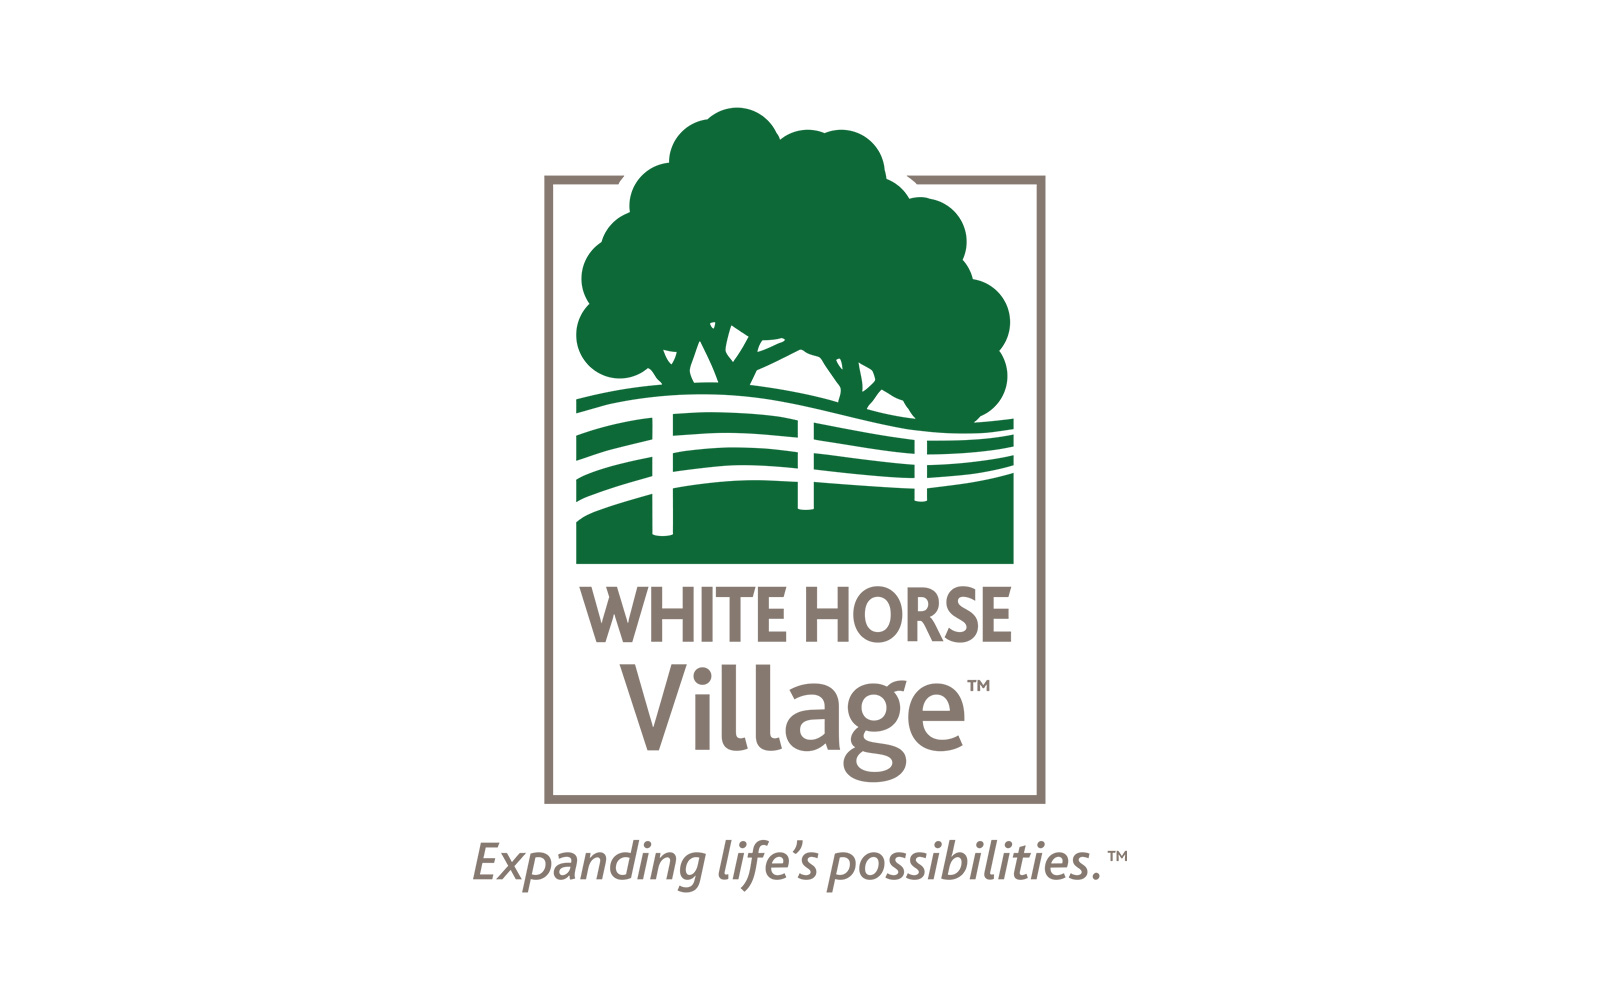 Blue Blaze designed White Horse Village logo